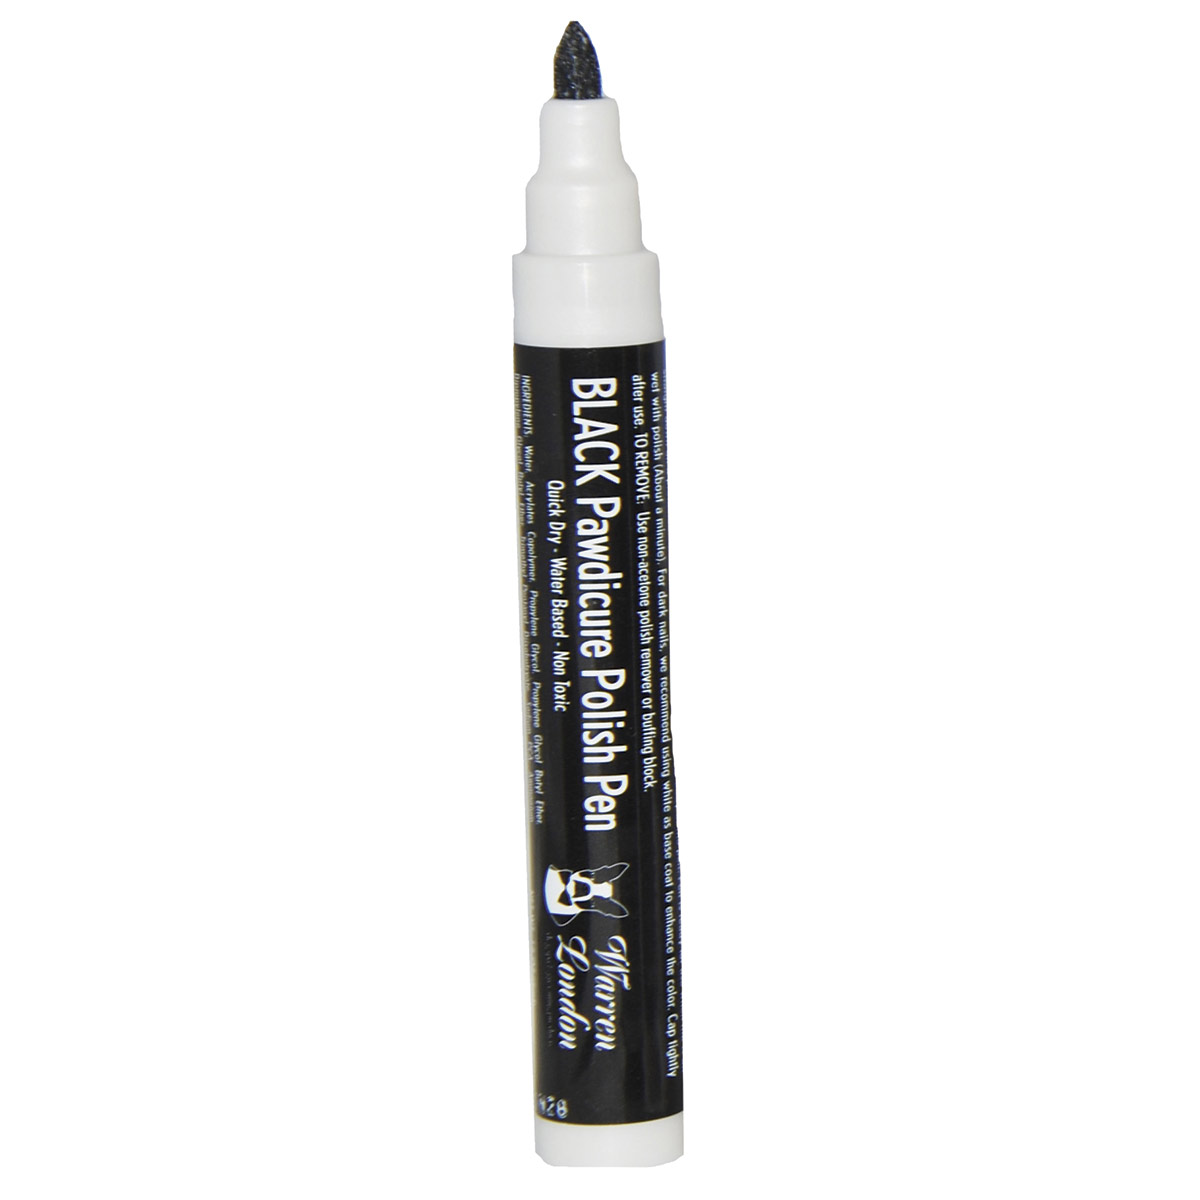 Warren London Pawdicure Polish Pen for Dogs - Black